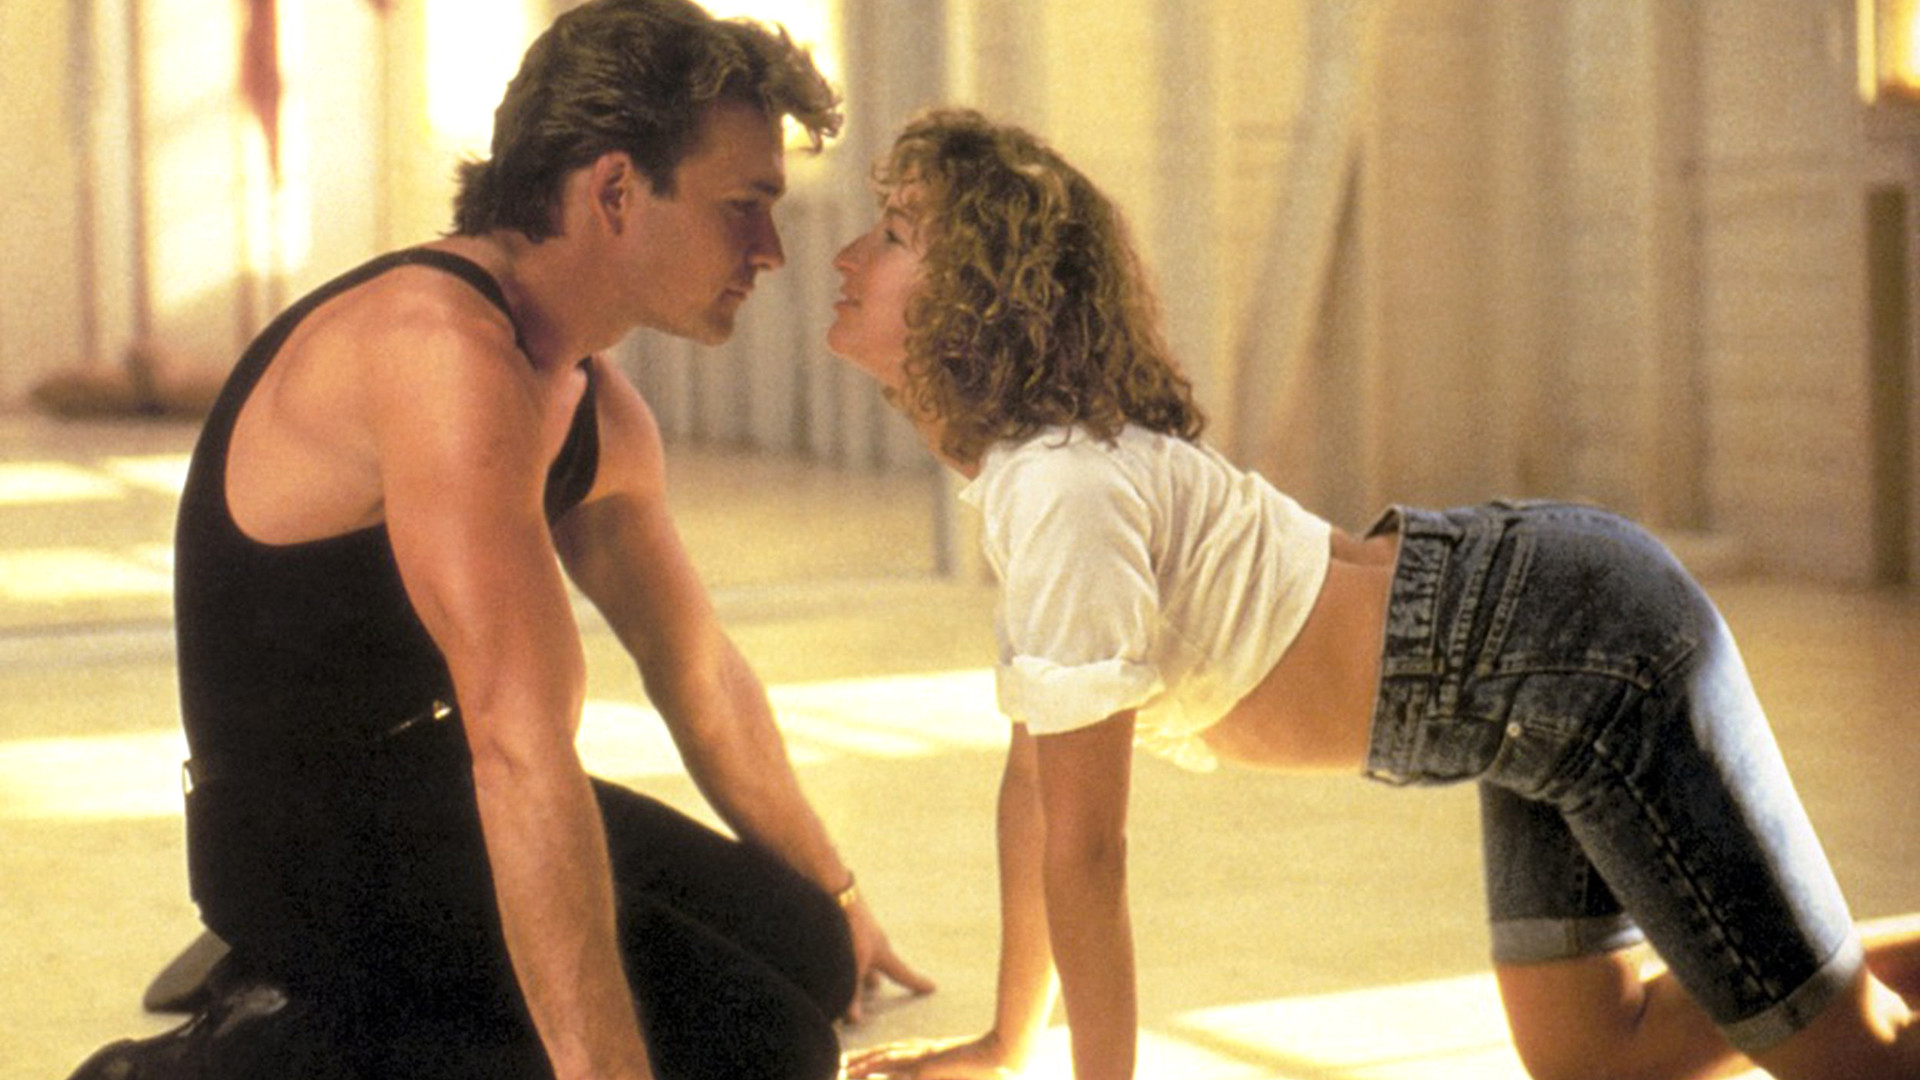 Res: 1920x1080, 'Dirty Dancing' turns 30: Here are 6 things to know about the '80s classic  - TODAY.com